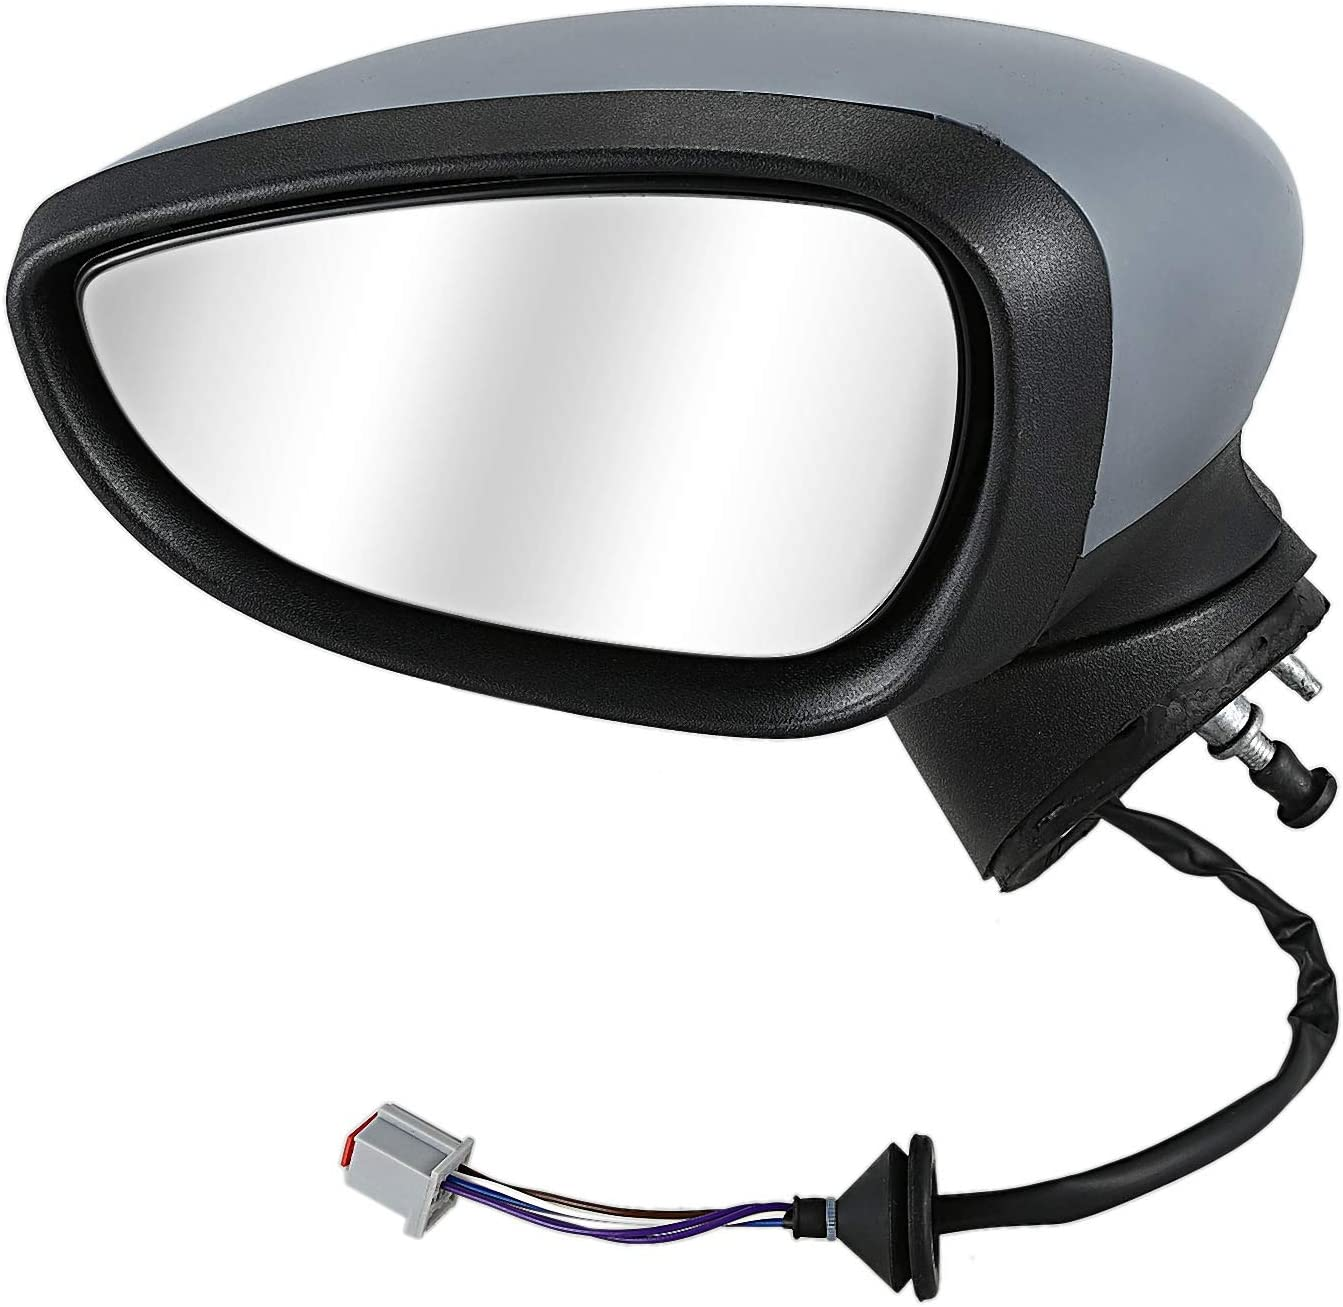 Chrome Rearview Covers for Megane III Laguna III Scenic Fluence Stainless Steel 2 Set of Exterior Mirror Caps